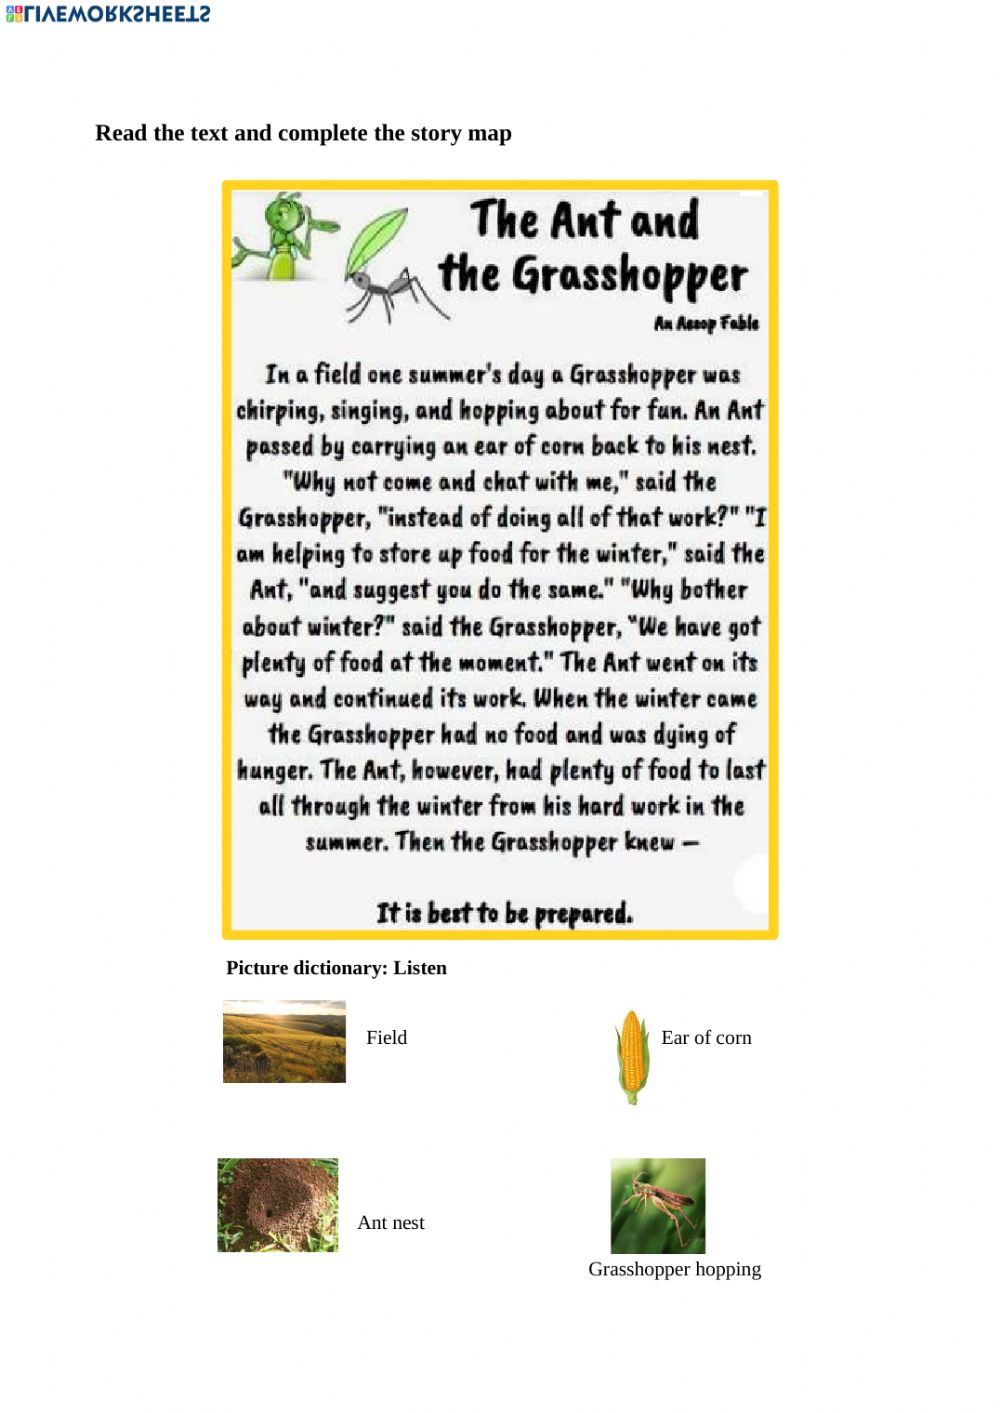 medium resolution of The Ant and the Grasshopper text \u0026 story map worksheet